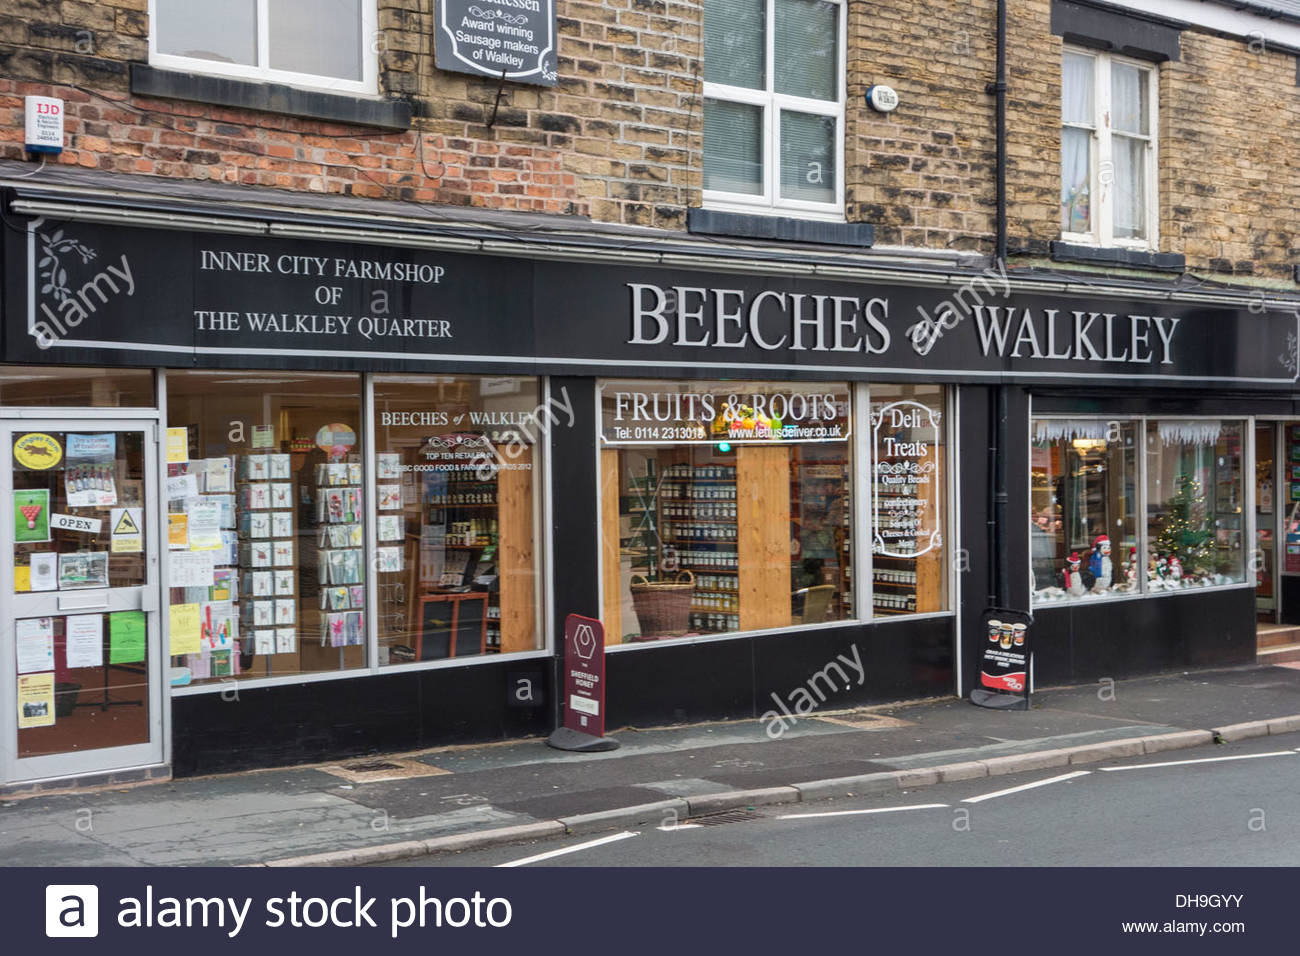 Beeches of Walkley, Sheffield, advertising as an inner city farmshop - Stock Image